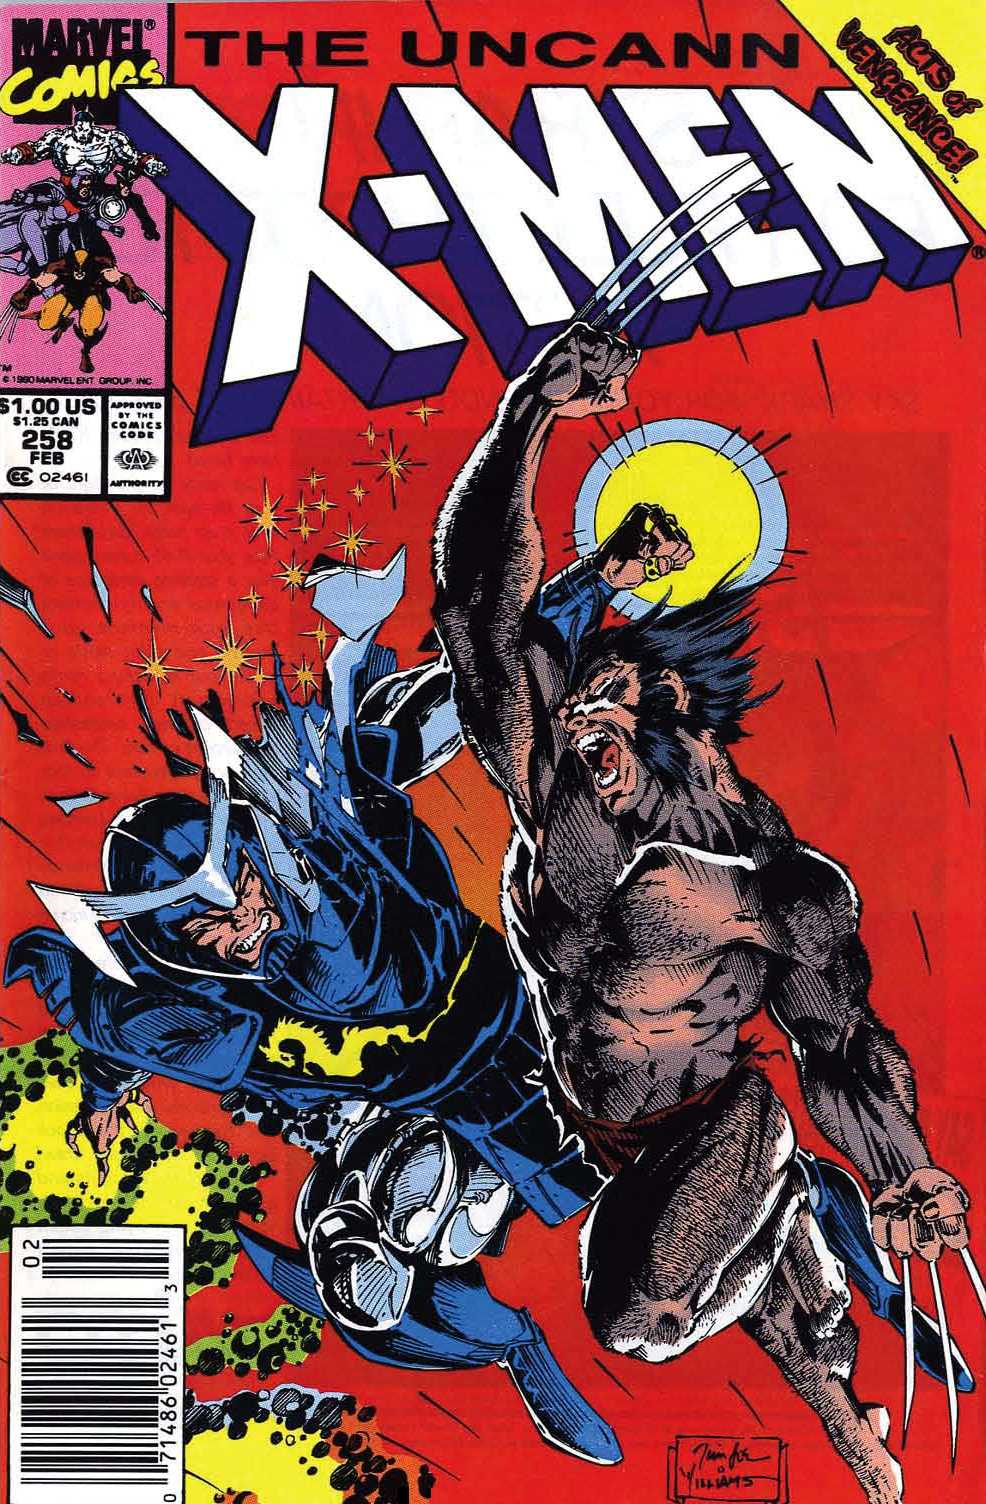 258 Best Tarot As A Way Of Knowing Images On Pinterest: Uncanny X-Men Vol 1 258